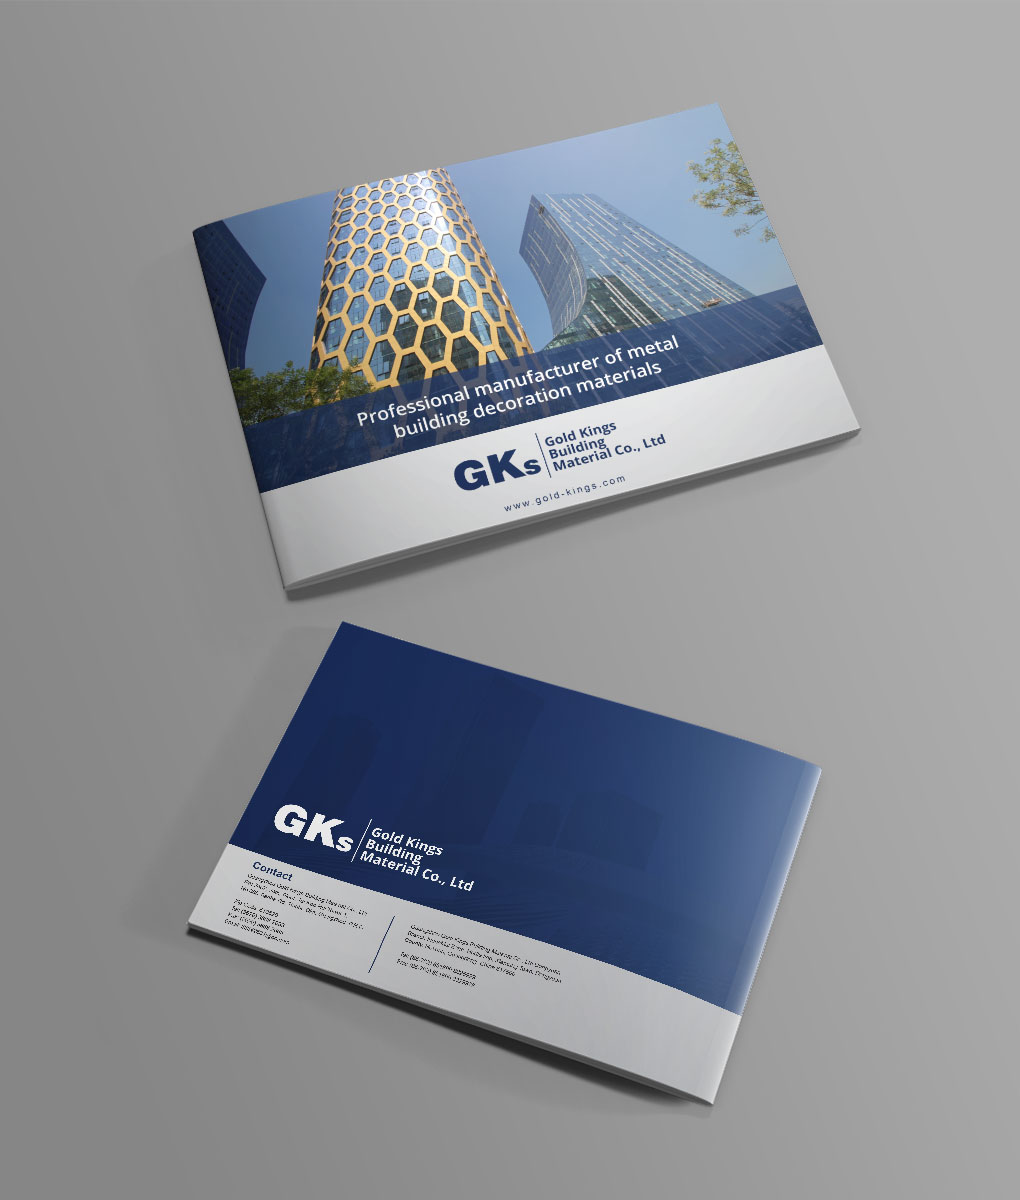 Serious modern it company brochure design for guangzhou gold kings brochure design by orlyaffran for guangzhou gold kings building material coltd design reheart Images